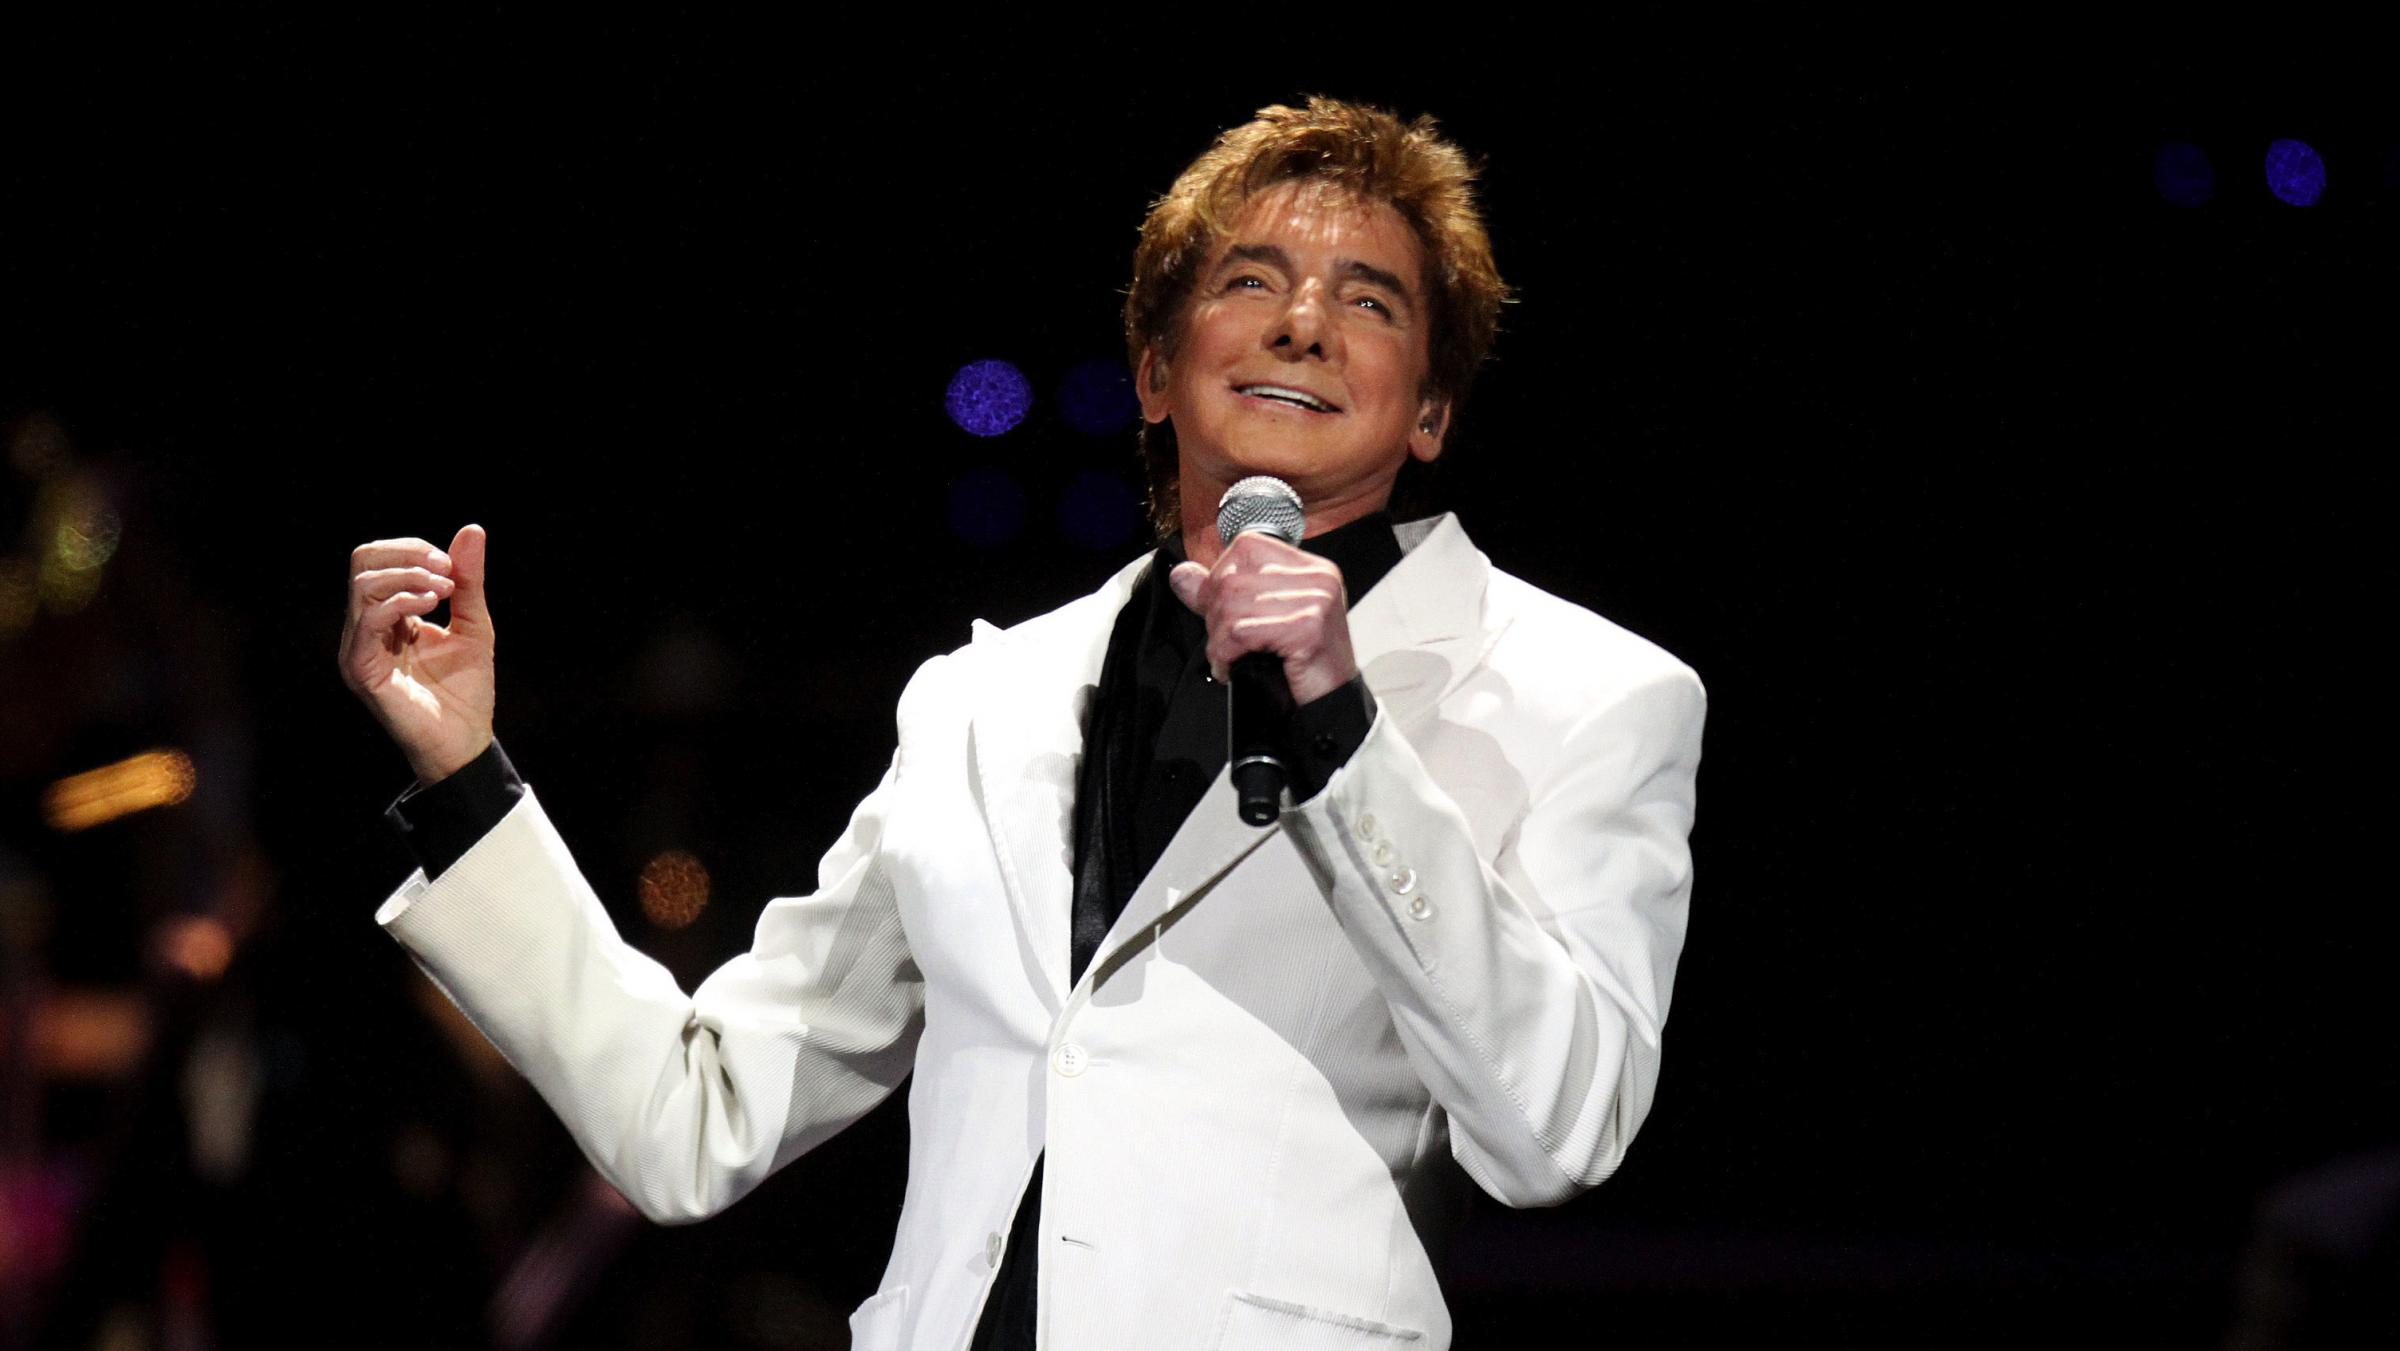 Barry Manilow On Singing Standards And His Real Job | WFAE